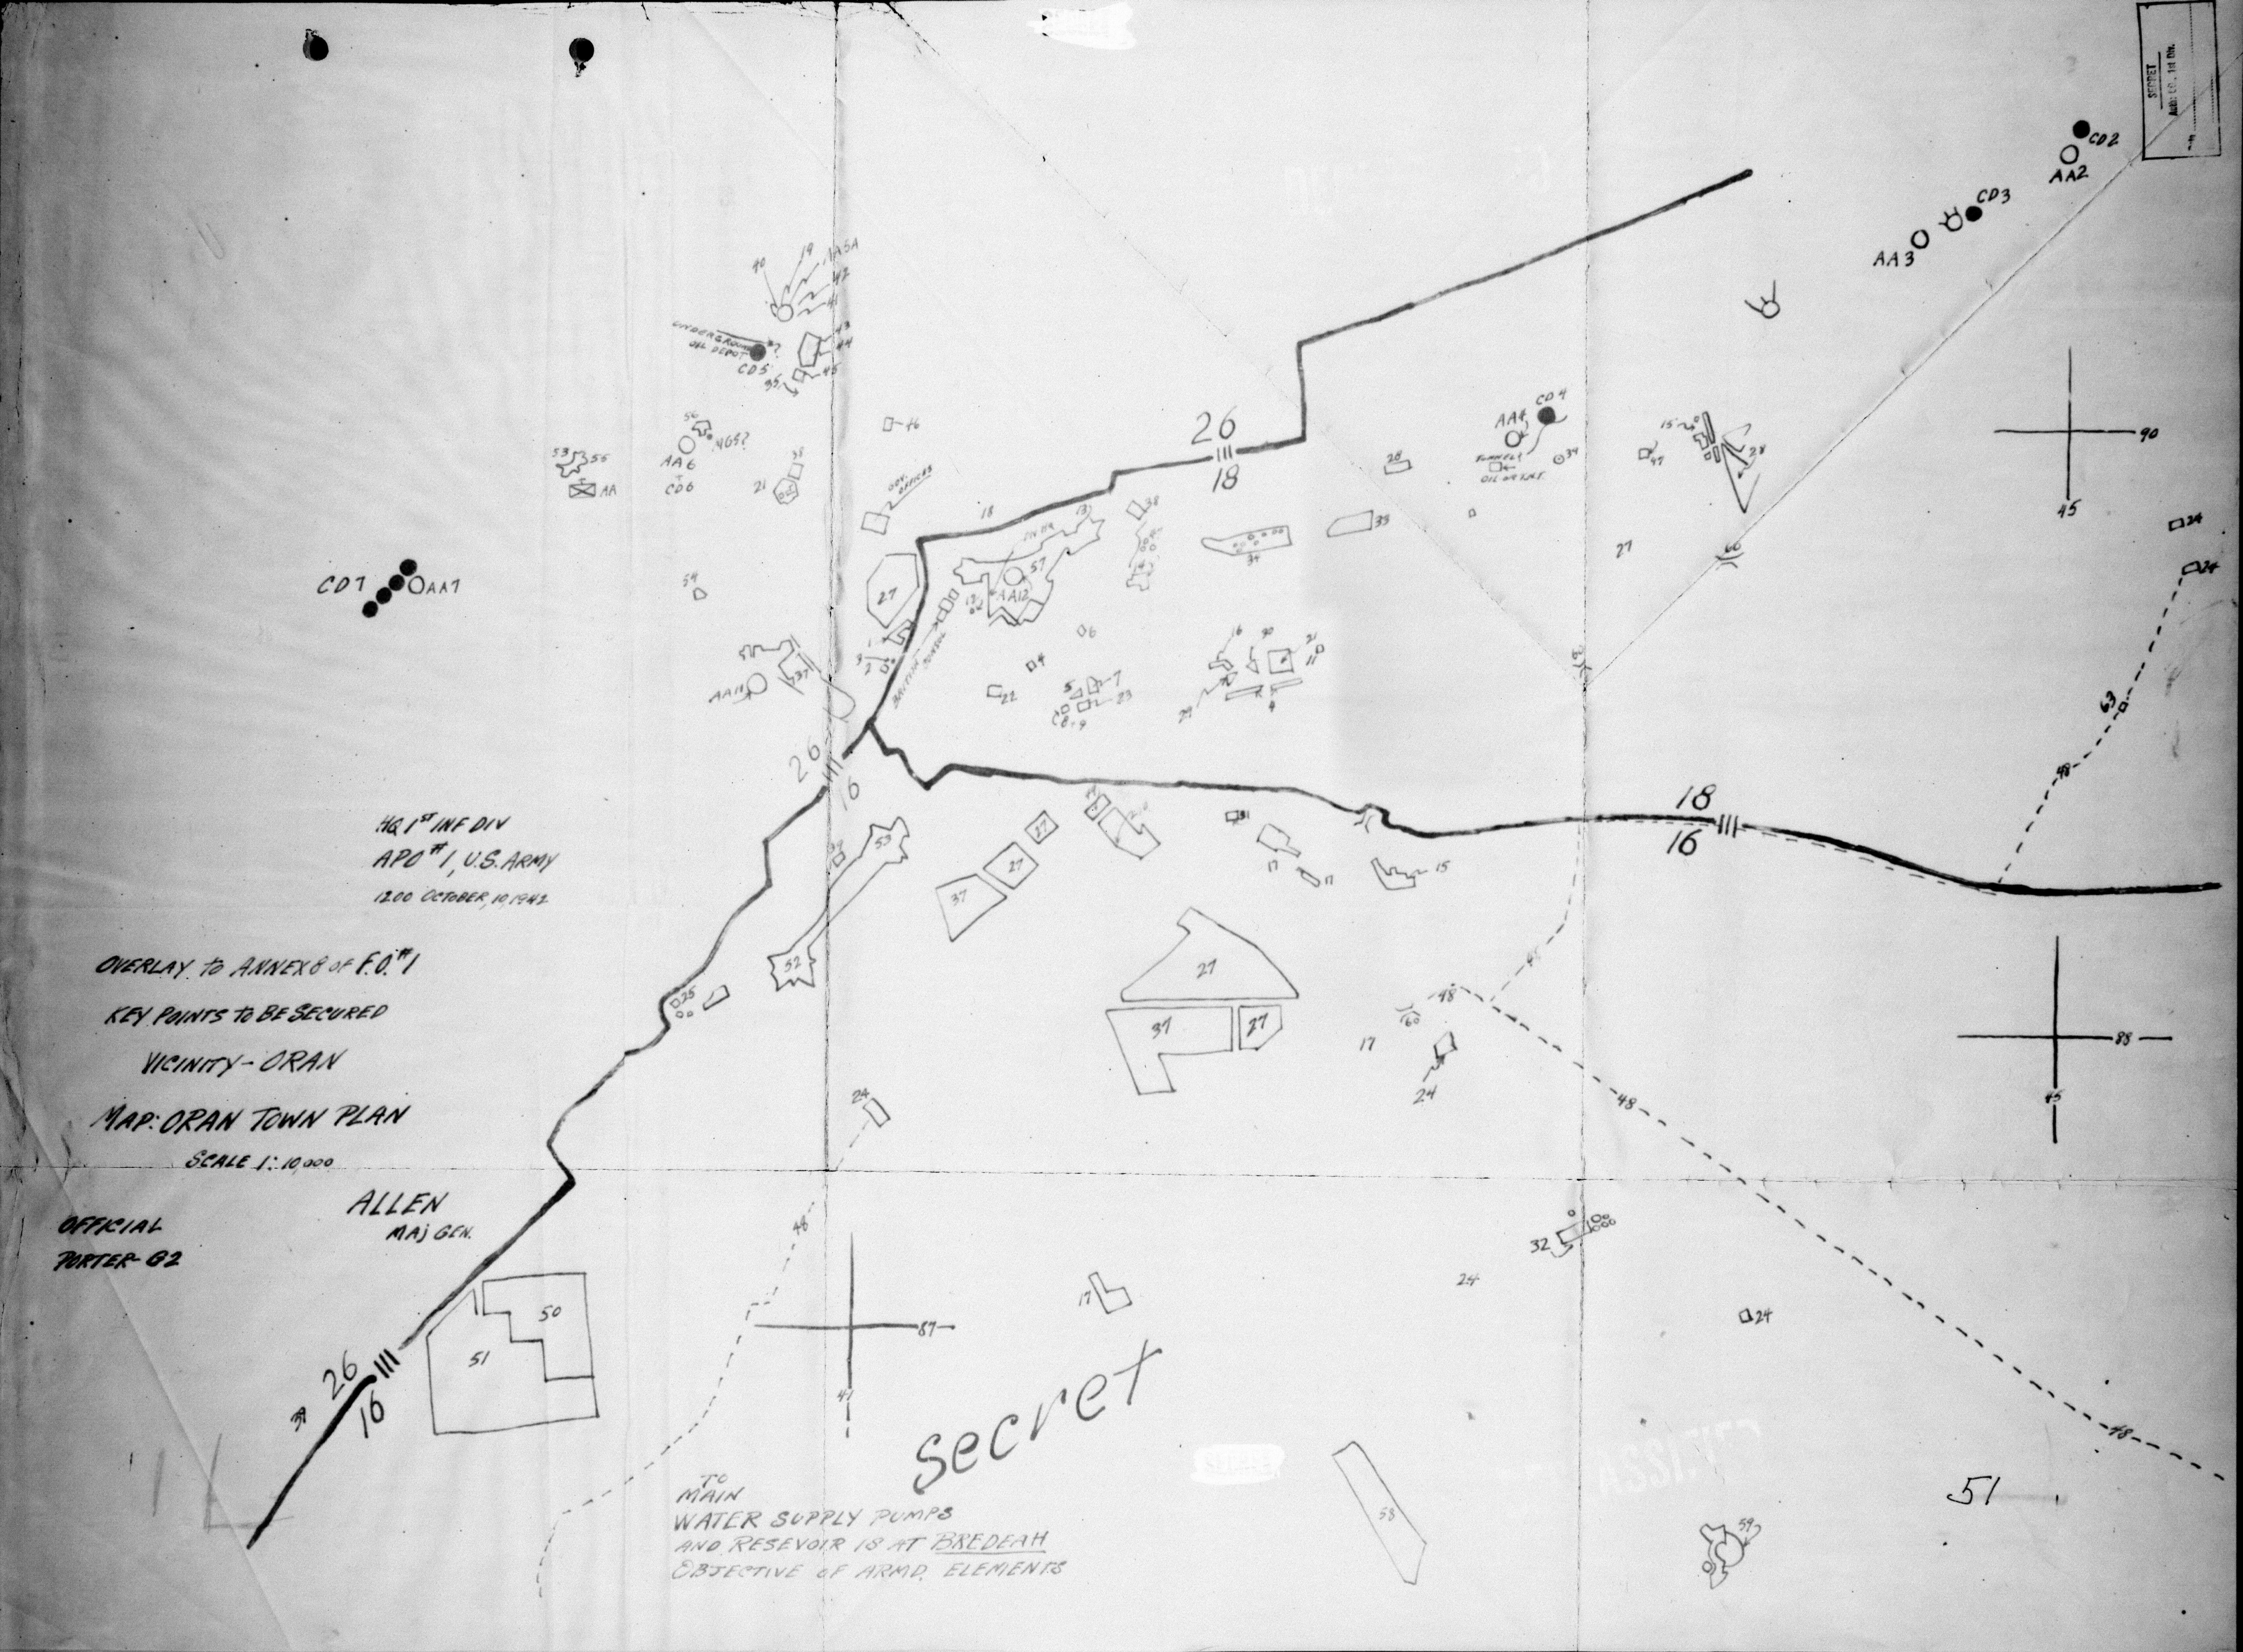 Hyperwar Torch 1st Infantry Division Field Orders A Circuit Diagram Of October 10 1942